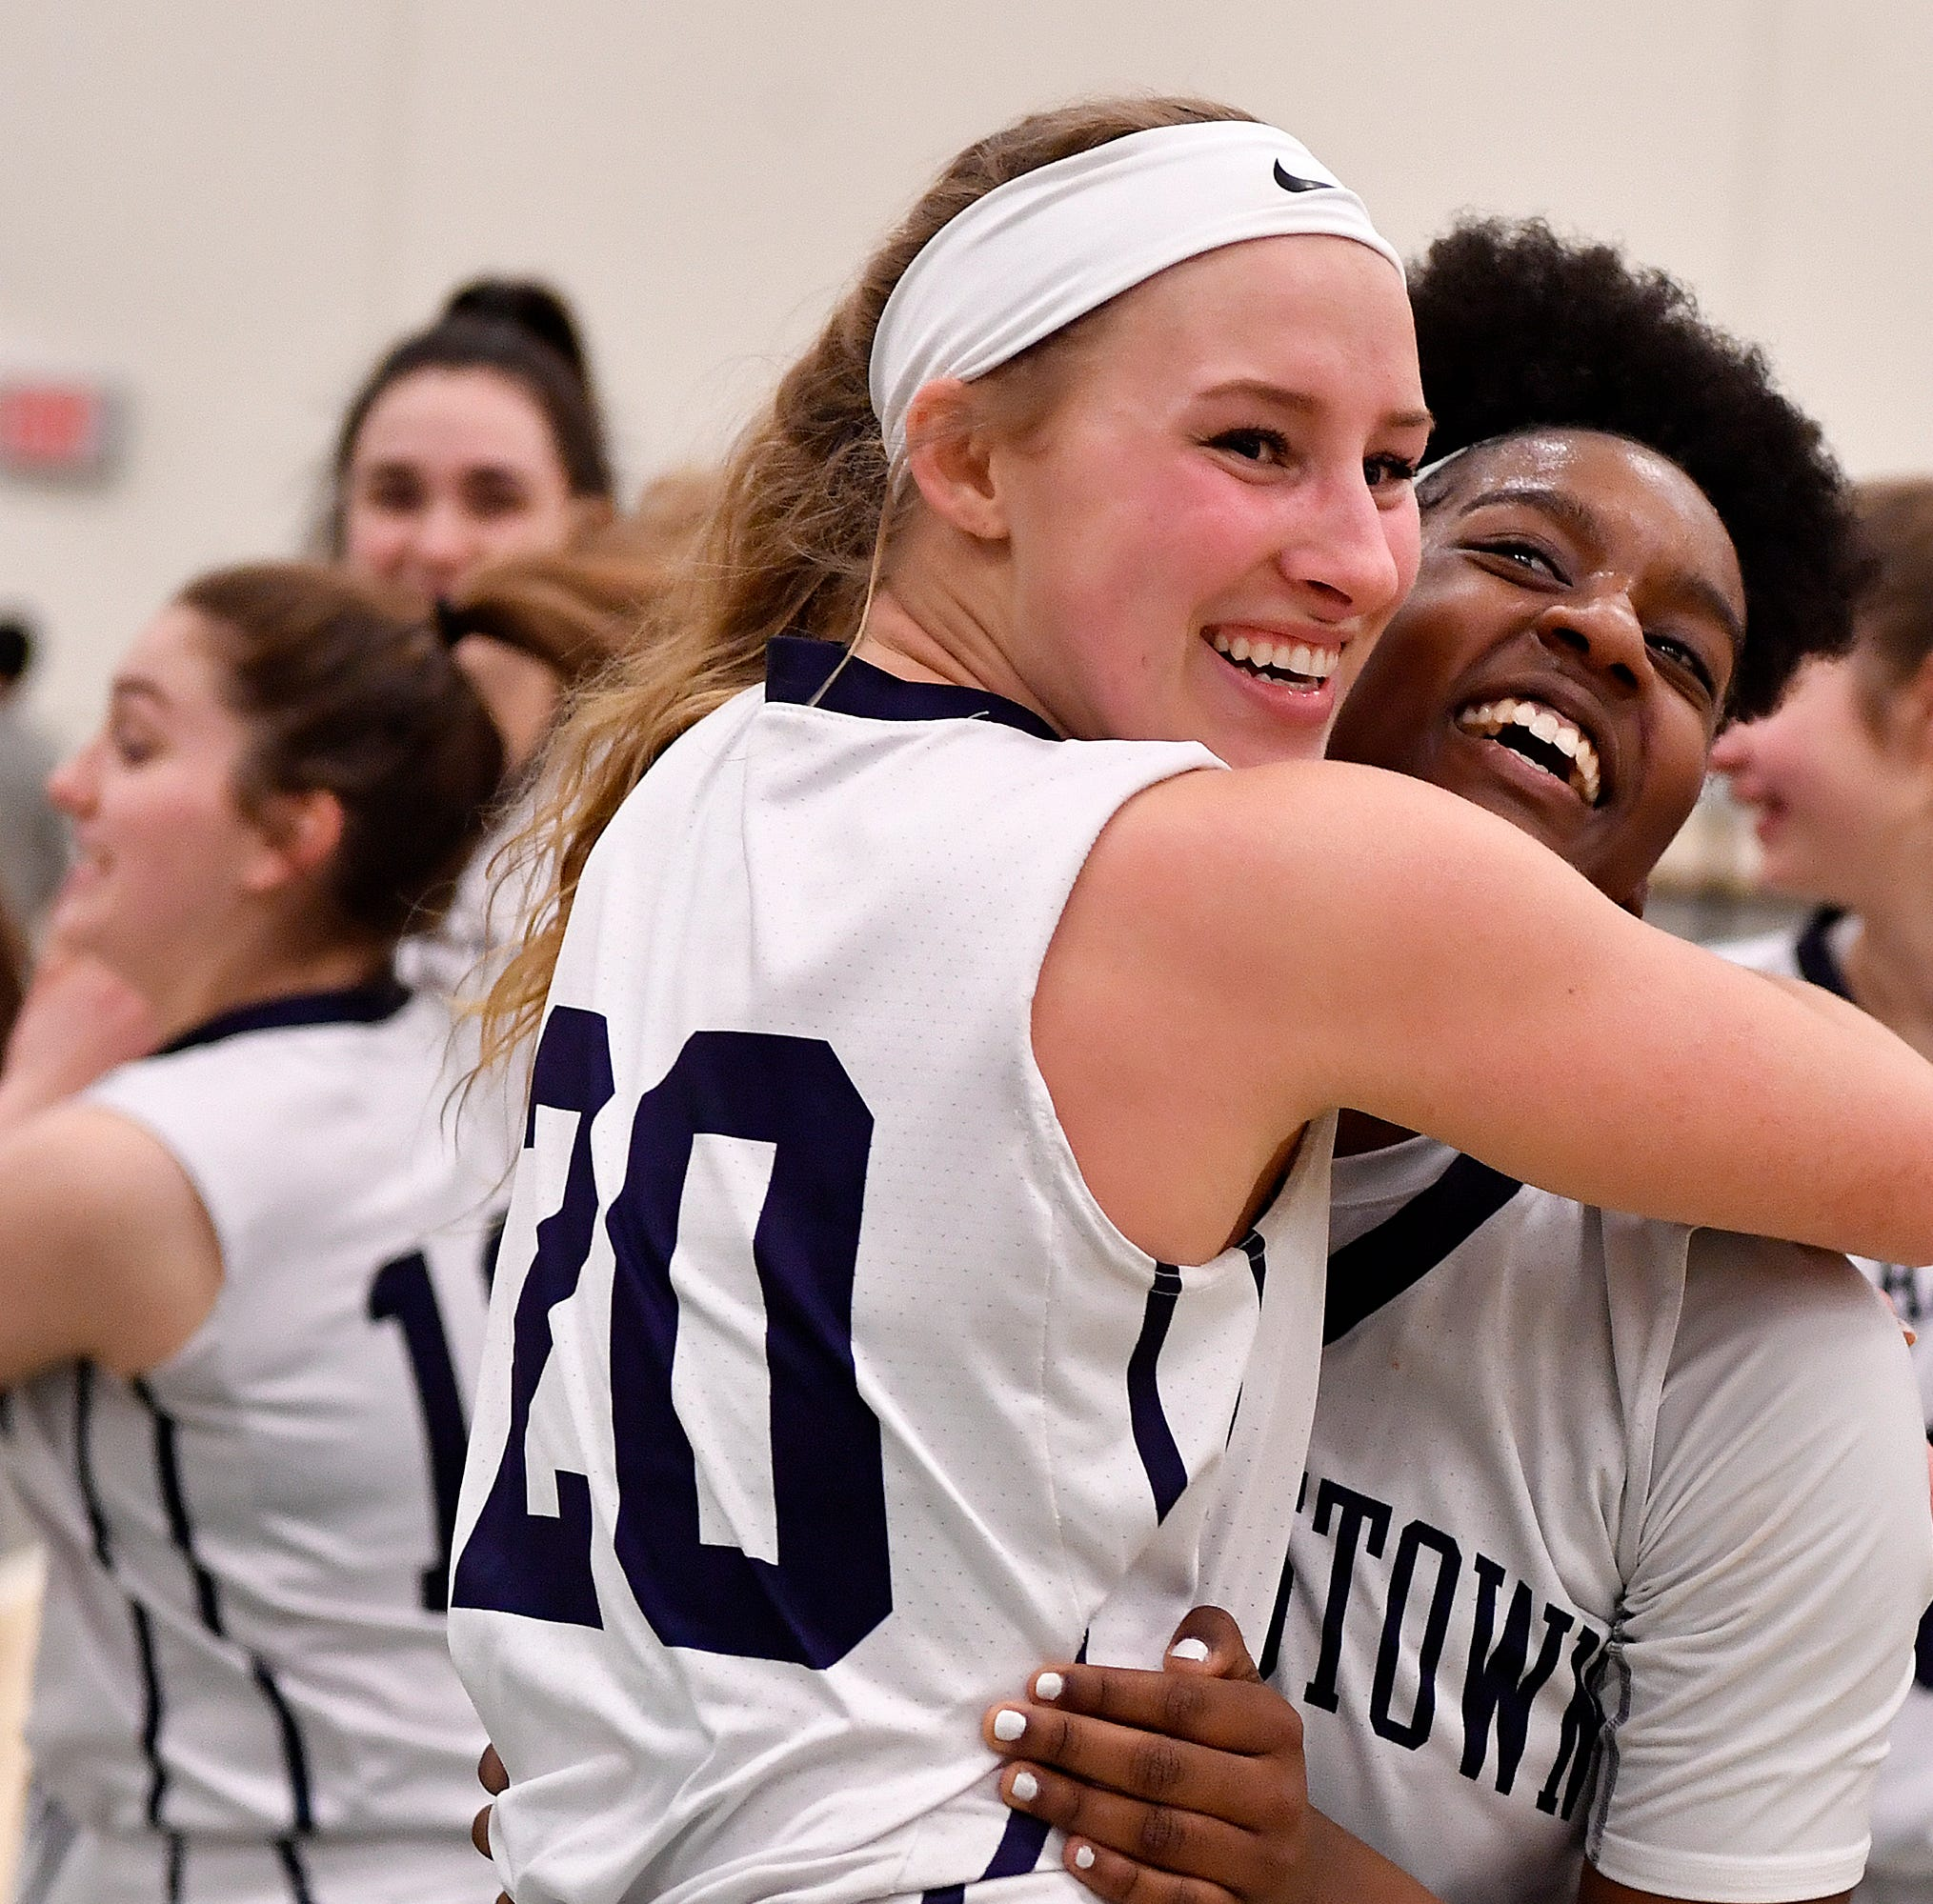 Defensive dominance leads Dallastown Wildcats to York-Adams girls' basketball championship